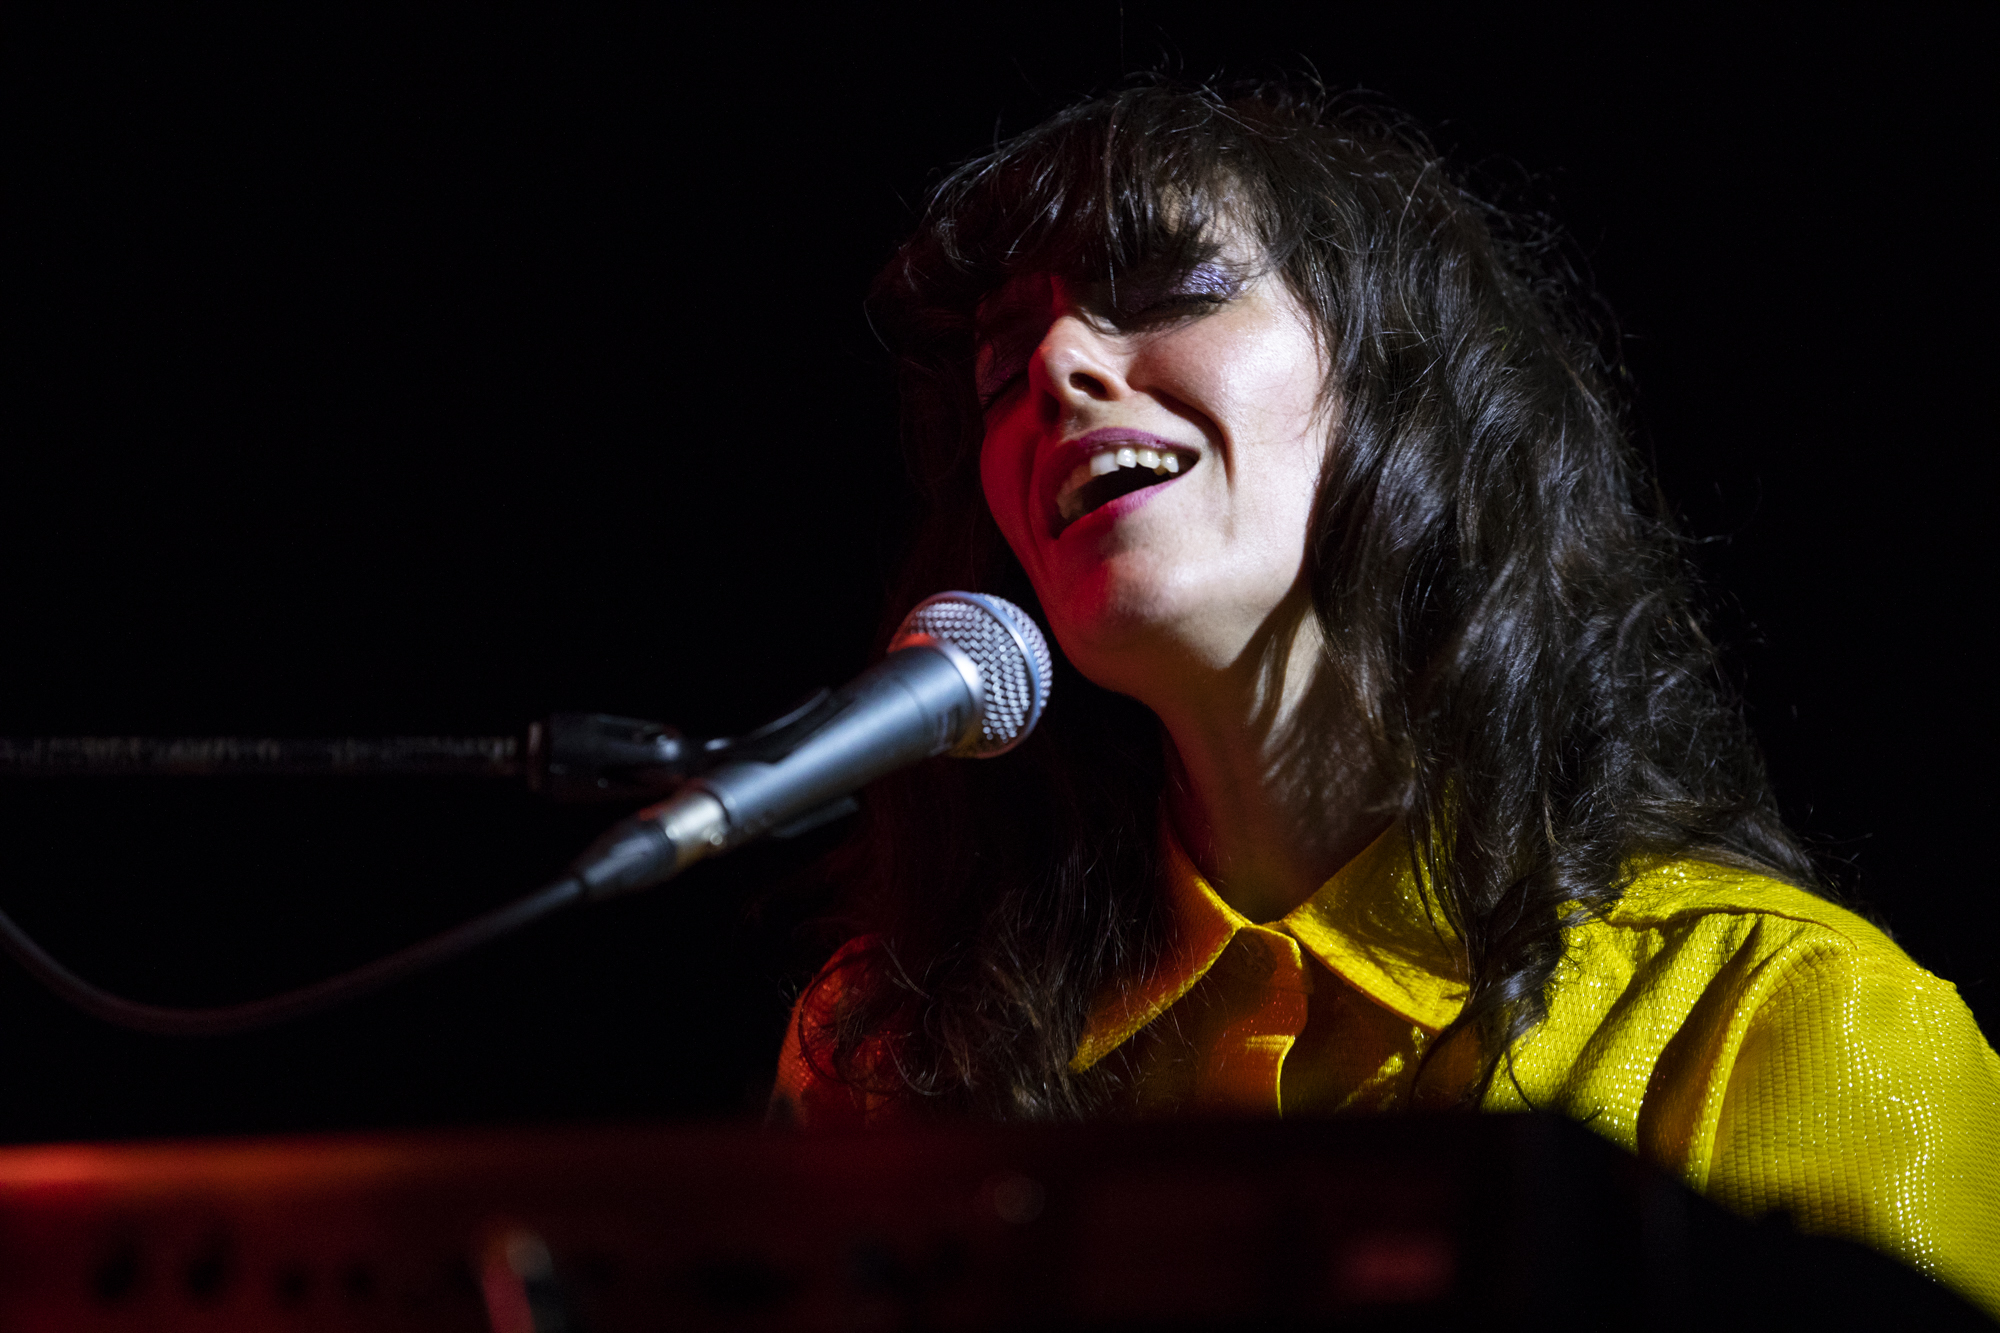 Natalie Prass plays at Rough Trade in Williamsburg, Brooklyn, New York on June 1, 2018. (© Michael Katzif - Do not use or republish without prior consent.)